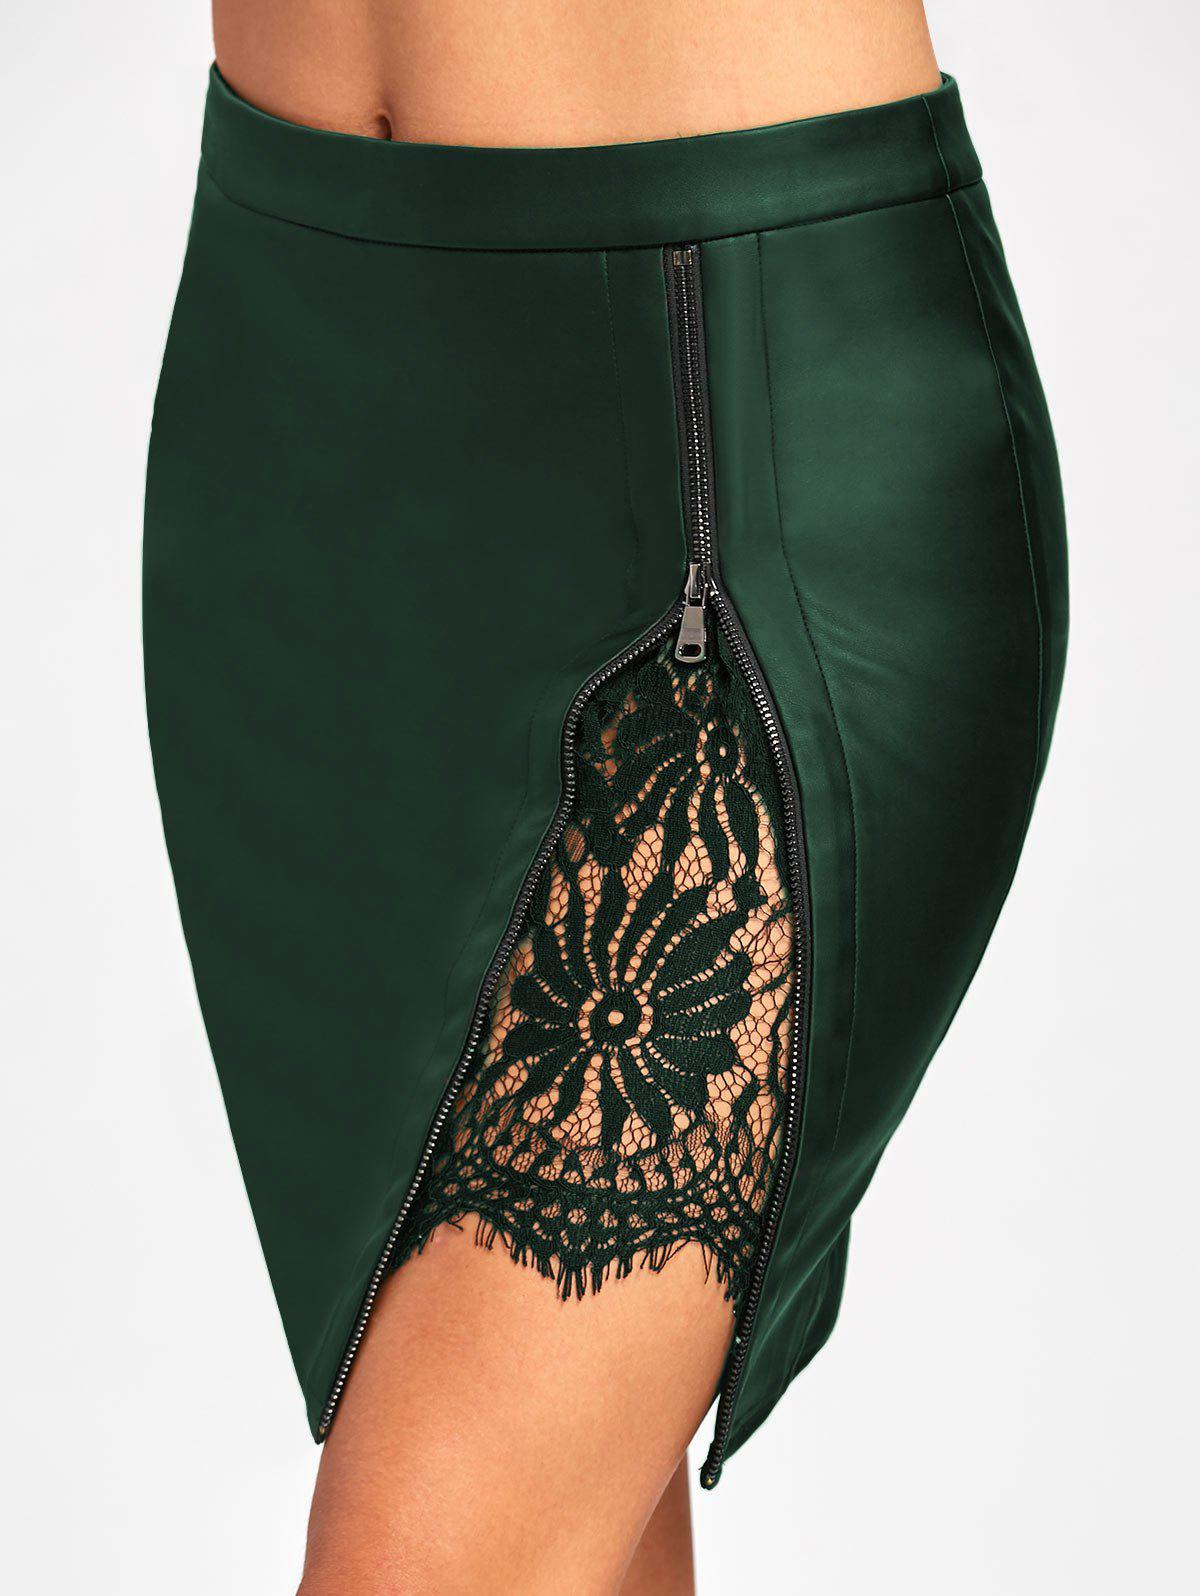 Lace Insert Fitted Faux Leather Skirt - DEEP GREEN M